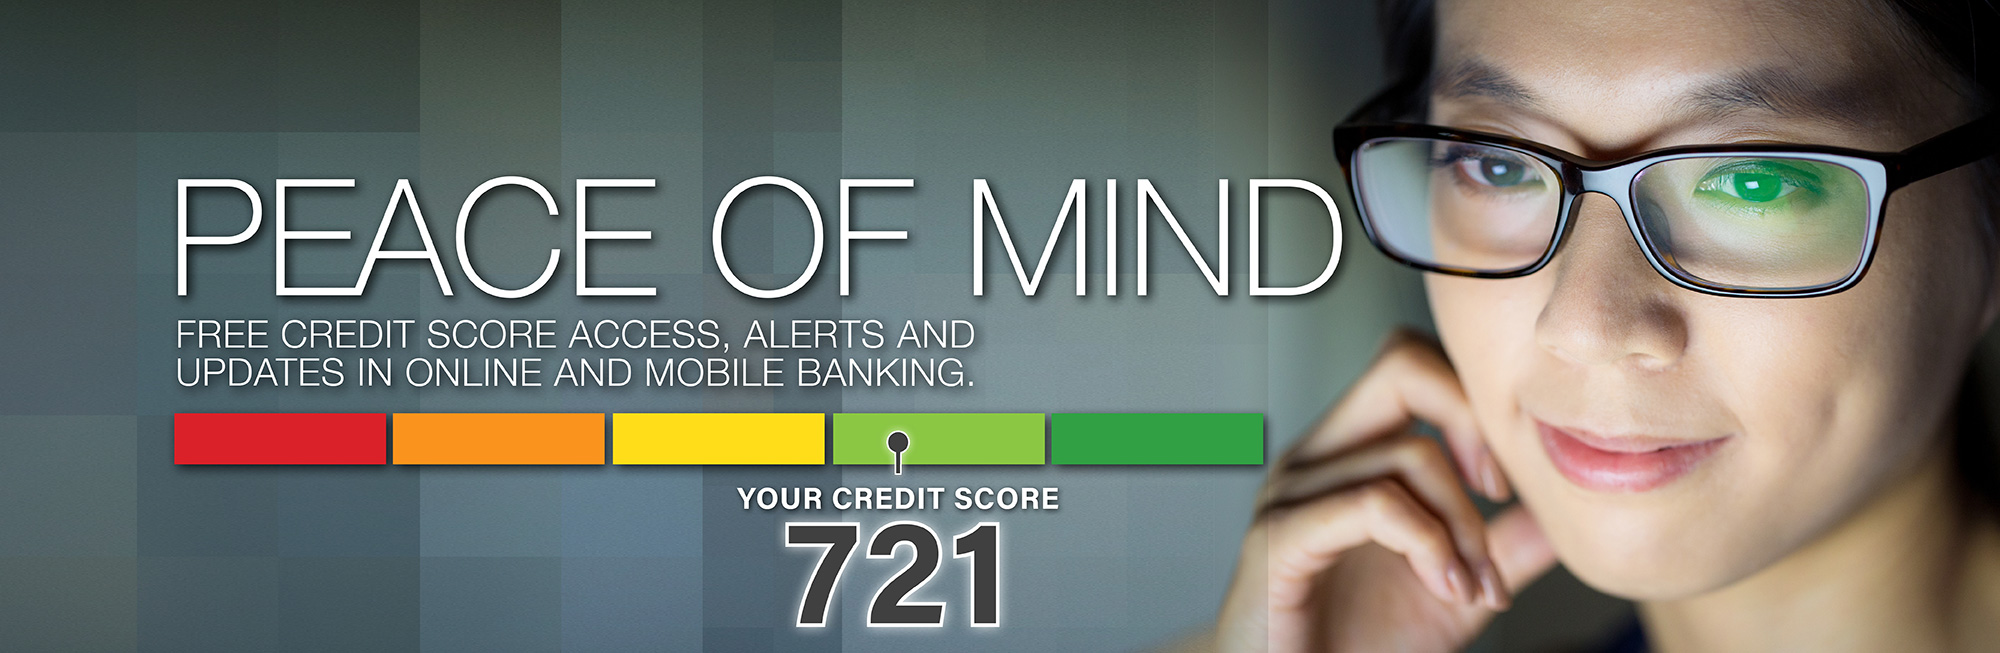 Free Credit Score Acess, Alerts, and Updates in Online and Mobile Banking.